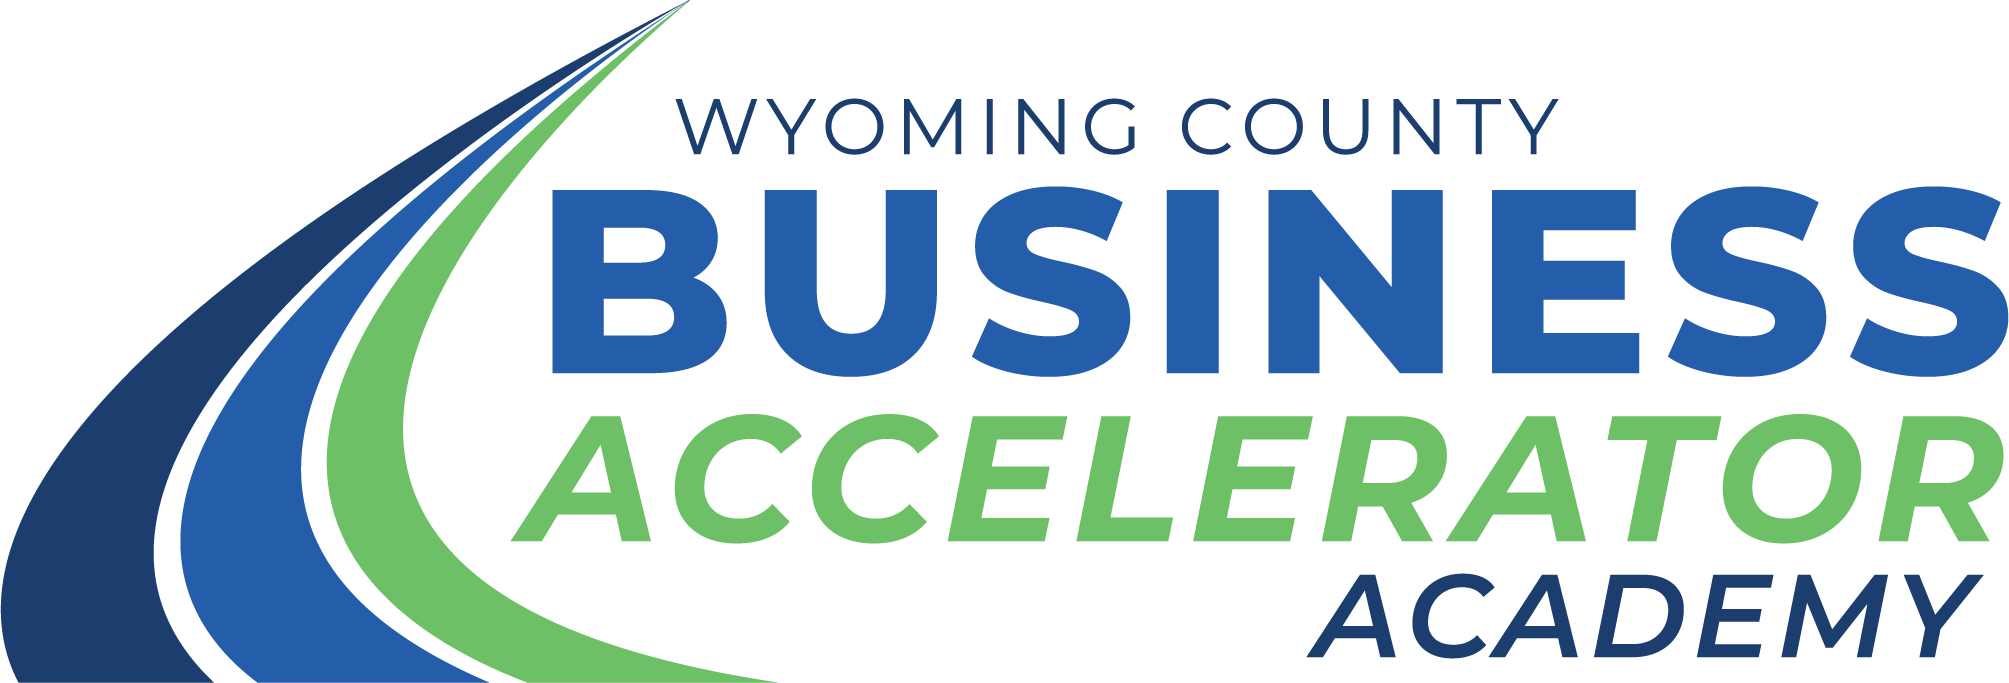 Wyoming County Business Accelerator Academy Logo